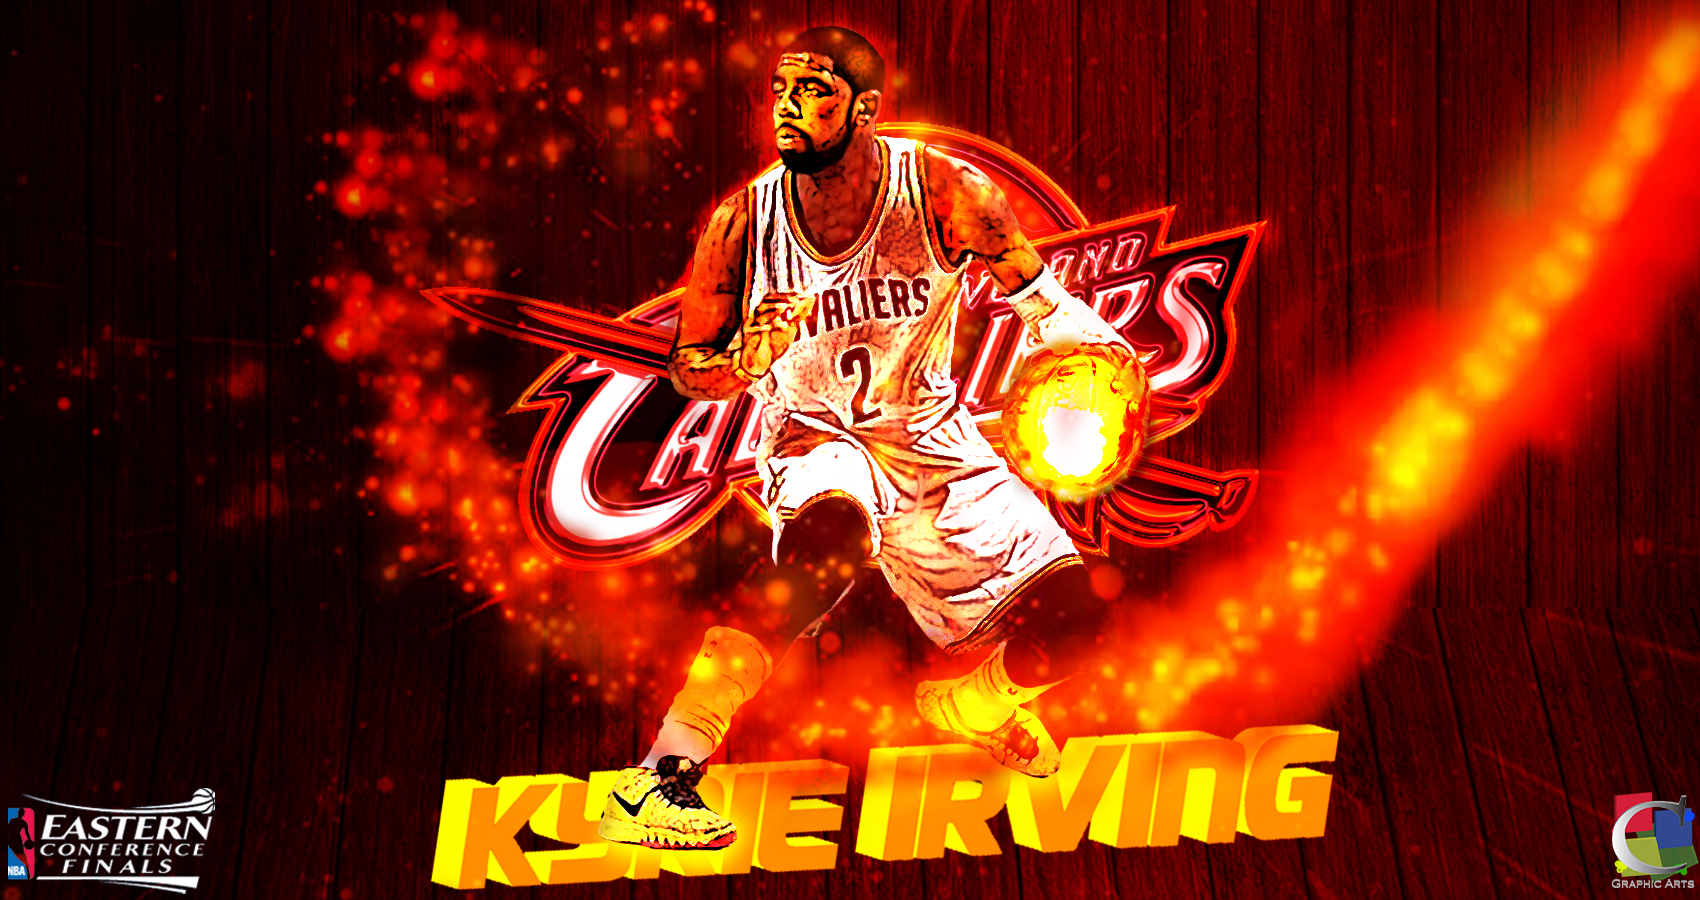 Kyrie Irving Wallpaper EASTERN CONFERENCE FINALS by ...